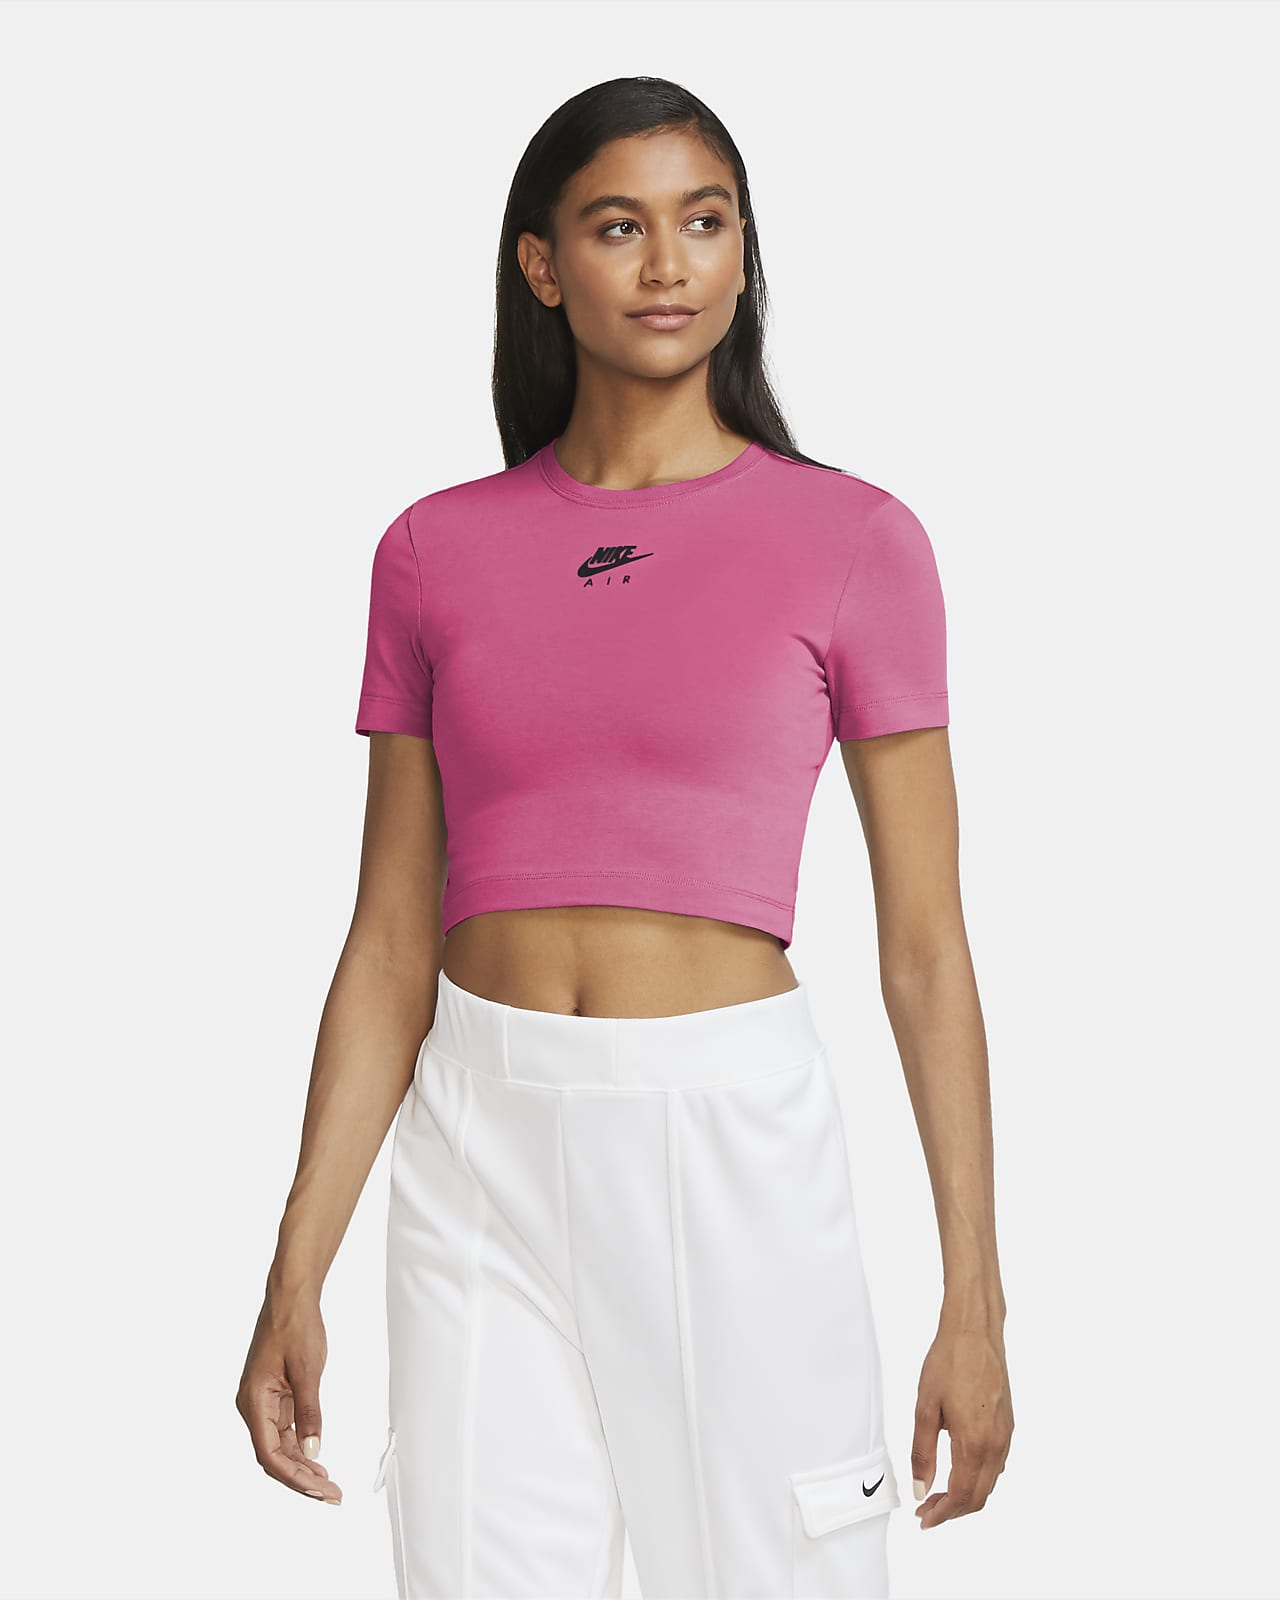 Nike Air Women's Crop Top